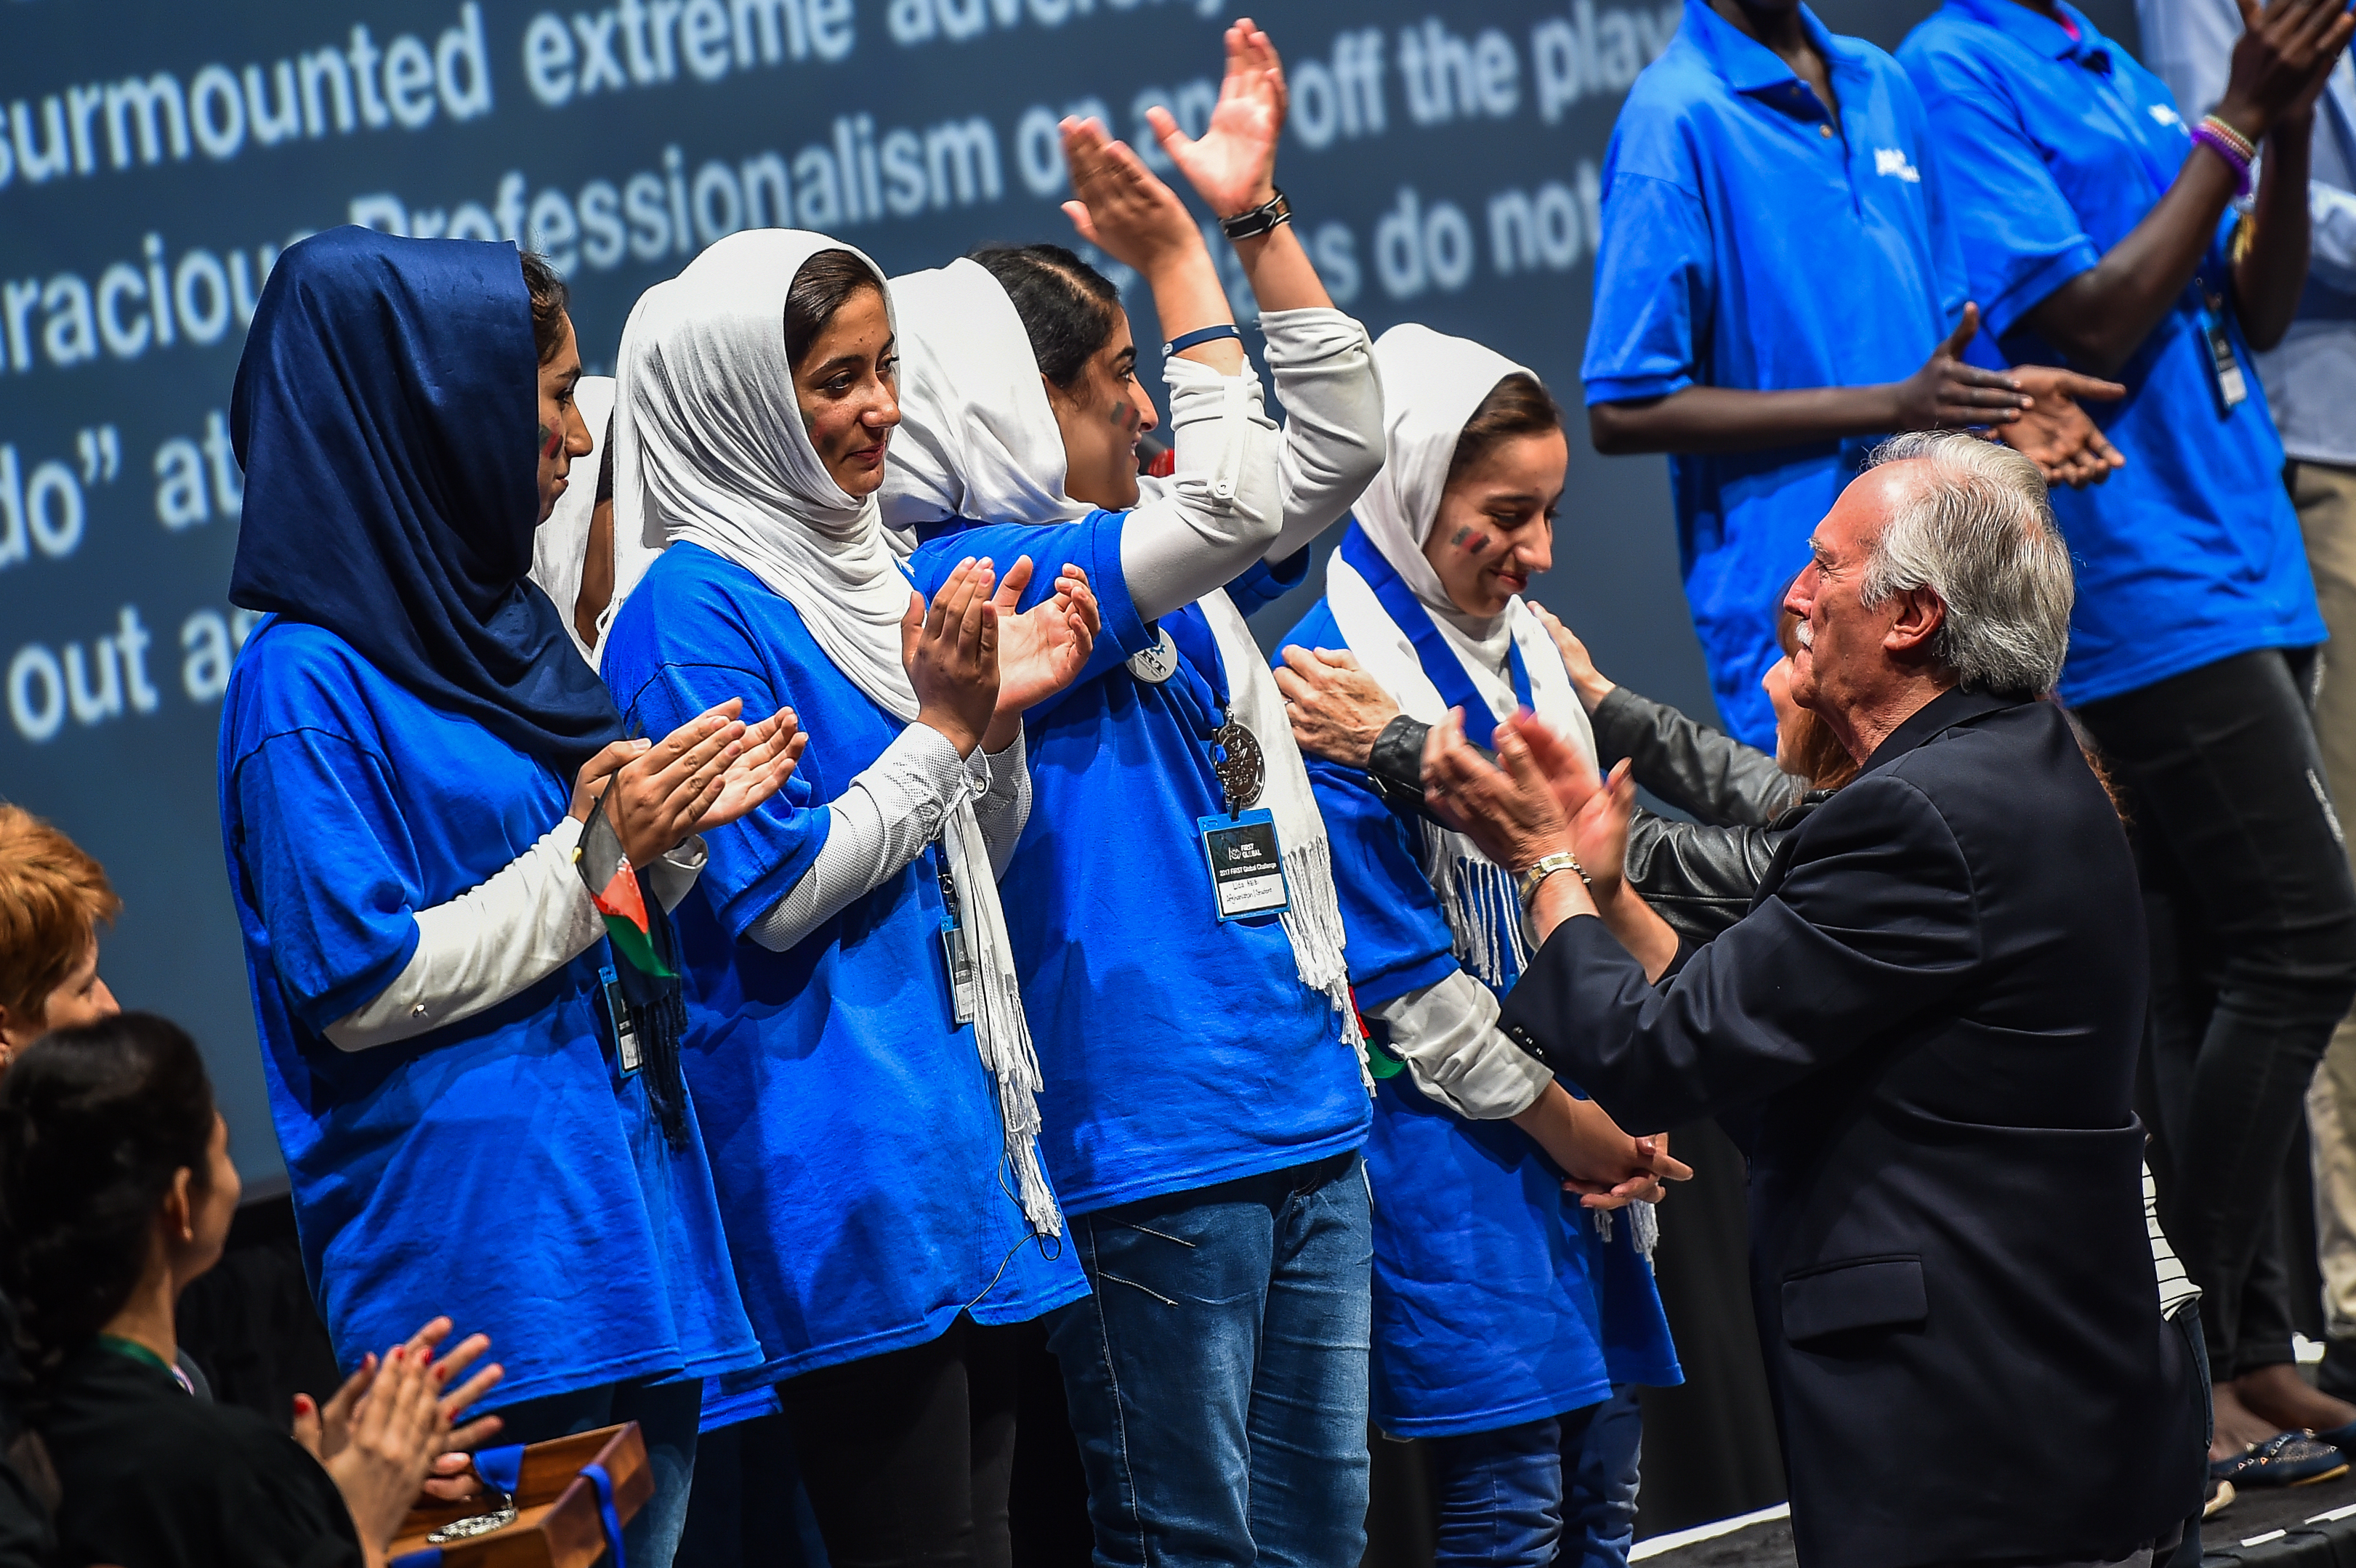 Team Afghanistan cheer after receiving silver for Rajaa Cherkaoui El Moursli Award for Courageous Achievement during the FIRST Global Challenge, international annual robotics game awards ceremony on Tuesday, July 18, 2017, at the DAR Constitution Hall in Washington, D.C.